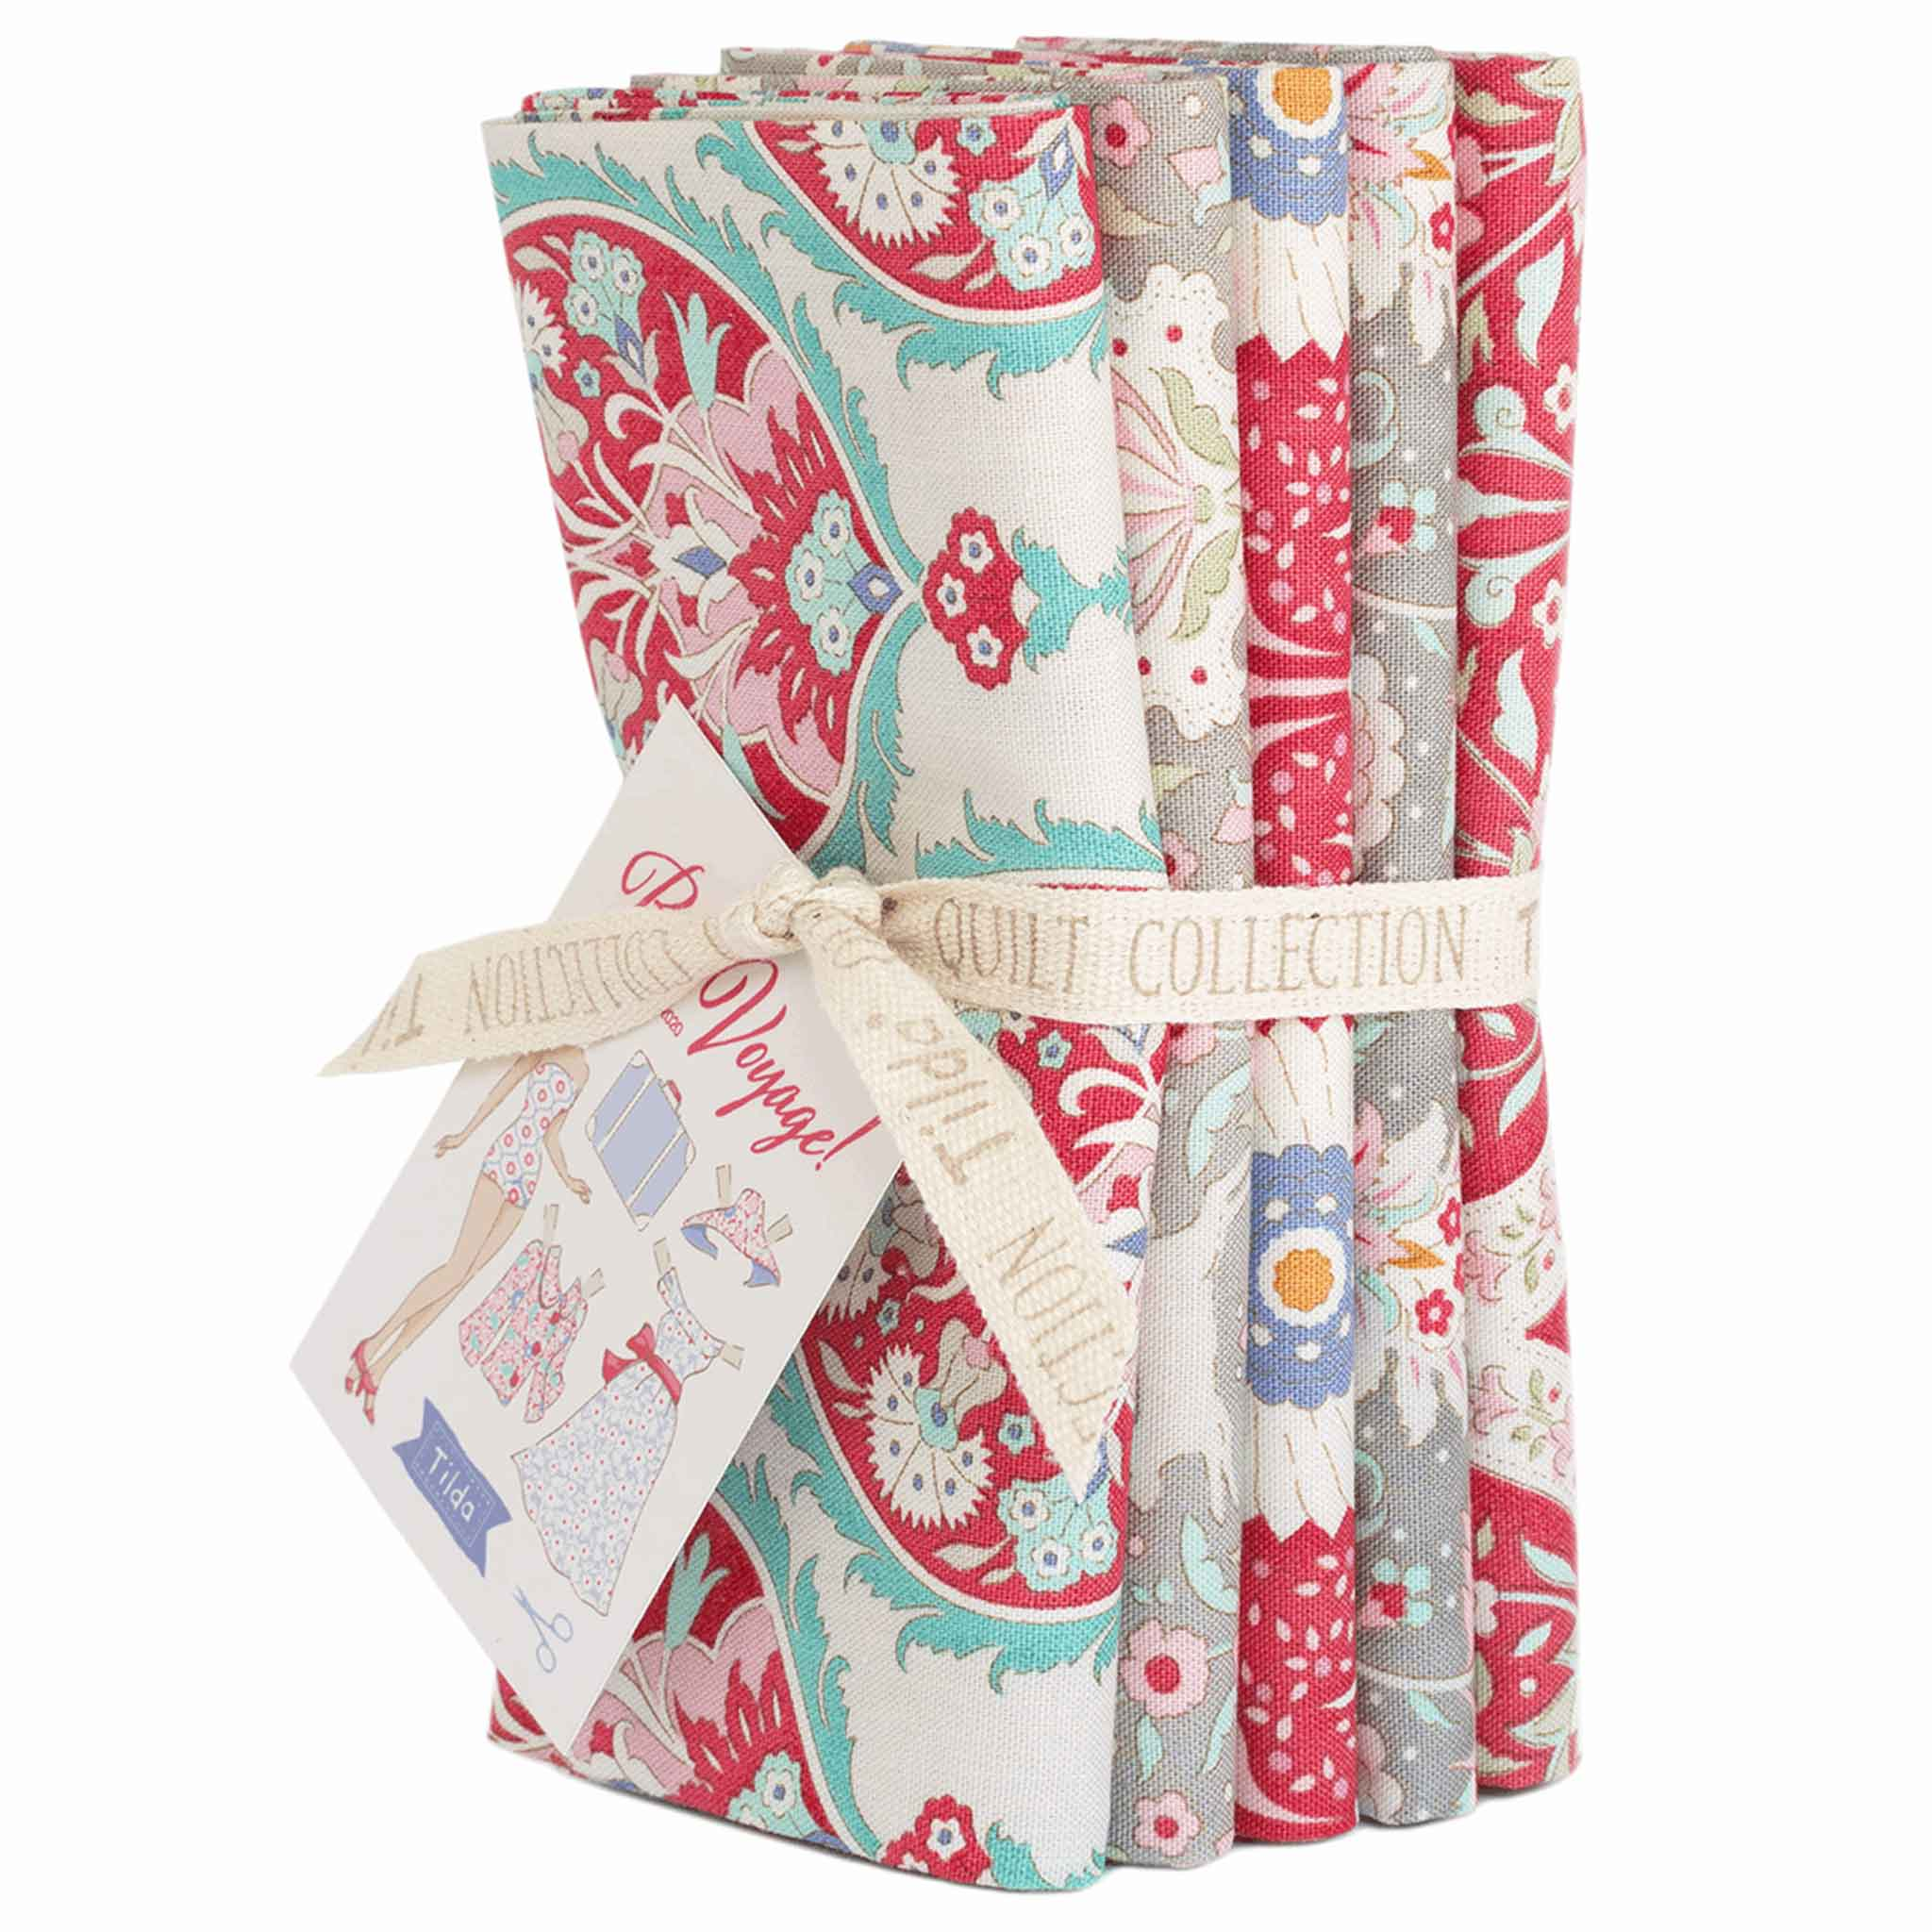 Tilda Red Bon Voyage Fat Quarter Bundle, Tilda 300074, 5 Cotton Fat Quarters, 50 cm x 55 cm